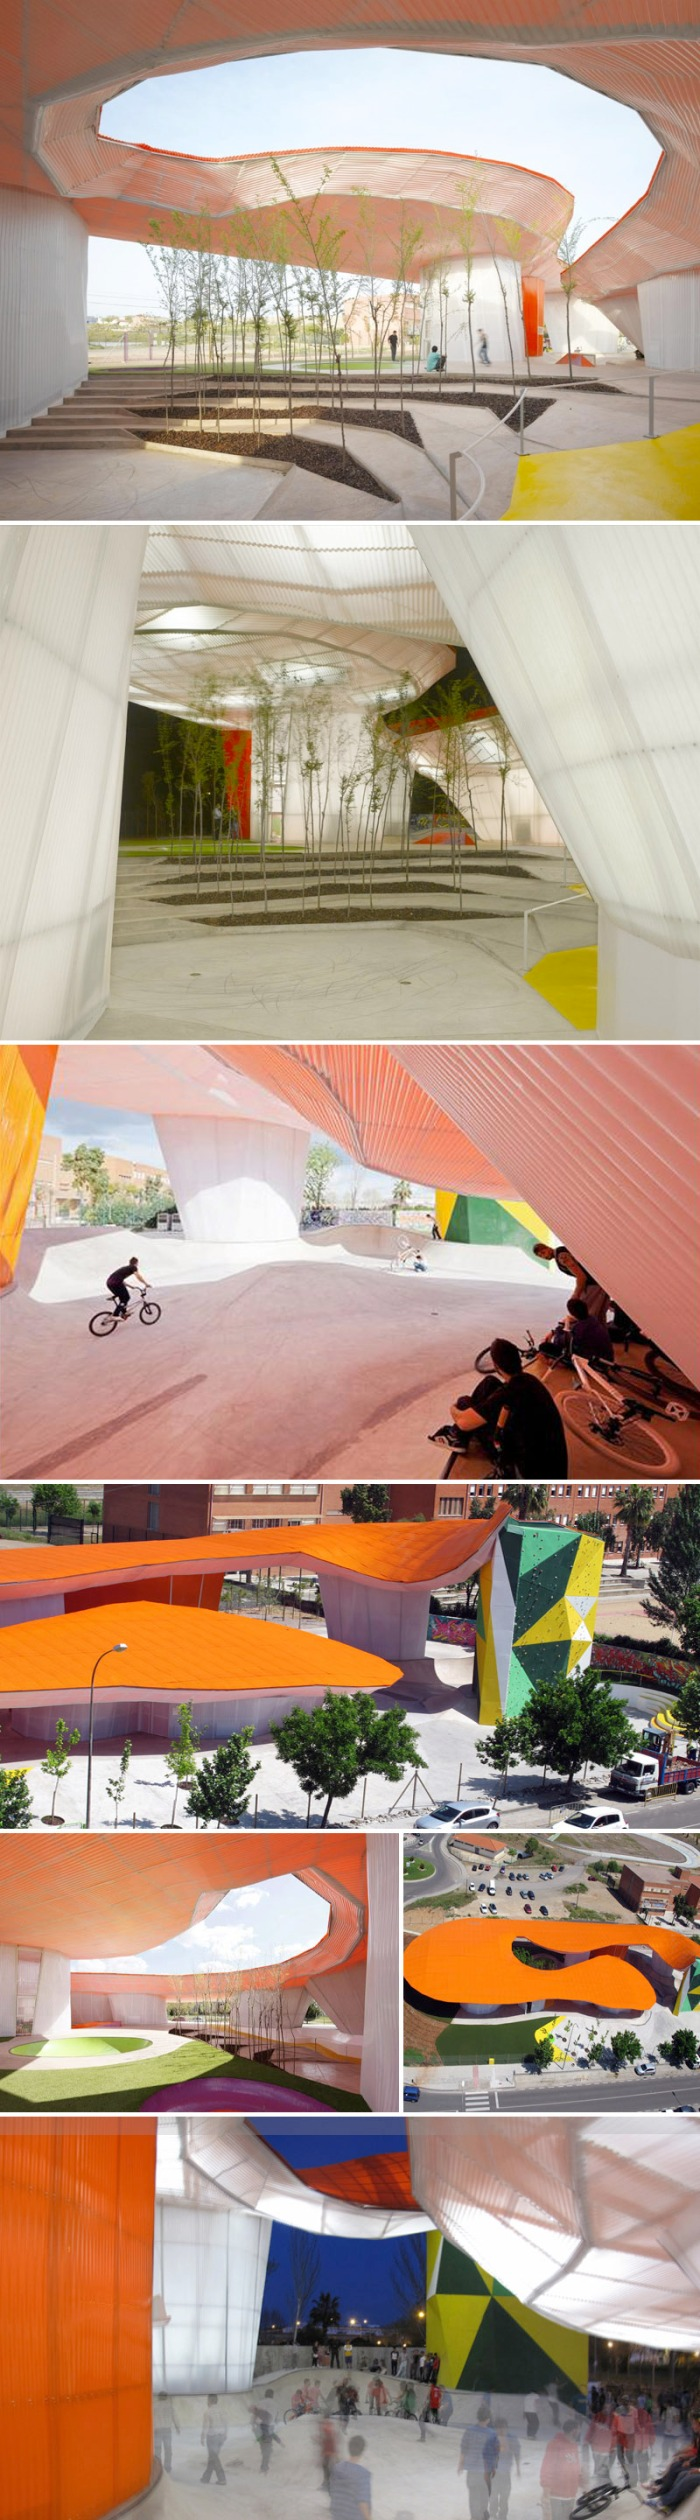 Mérida, Youth Center, skateboarding, rock climbing, Spain, contemporary architecture